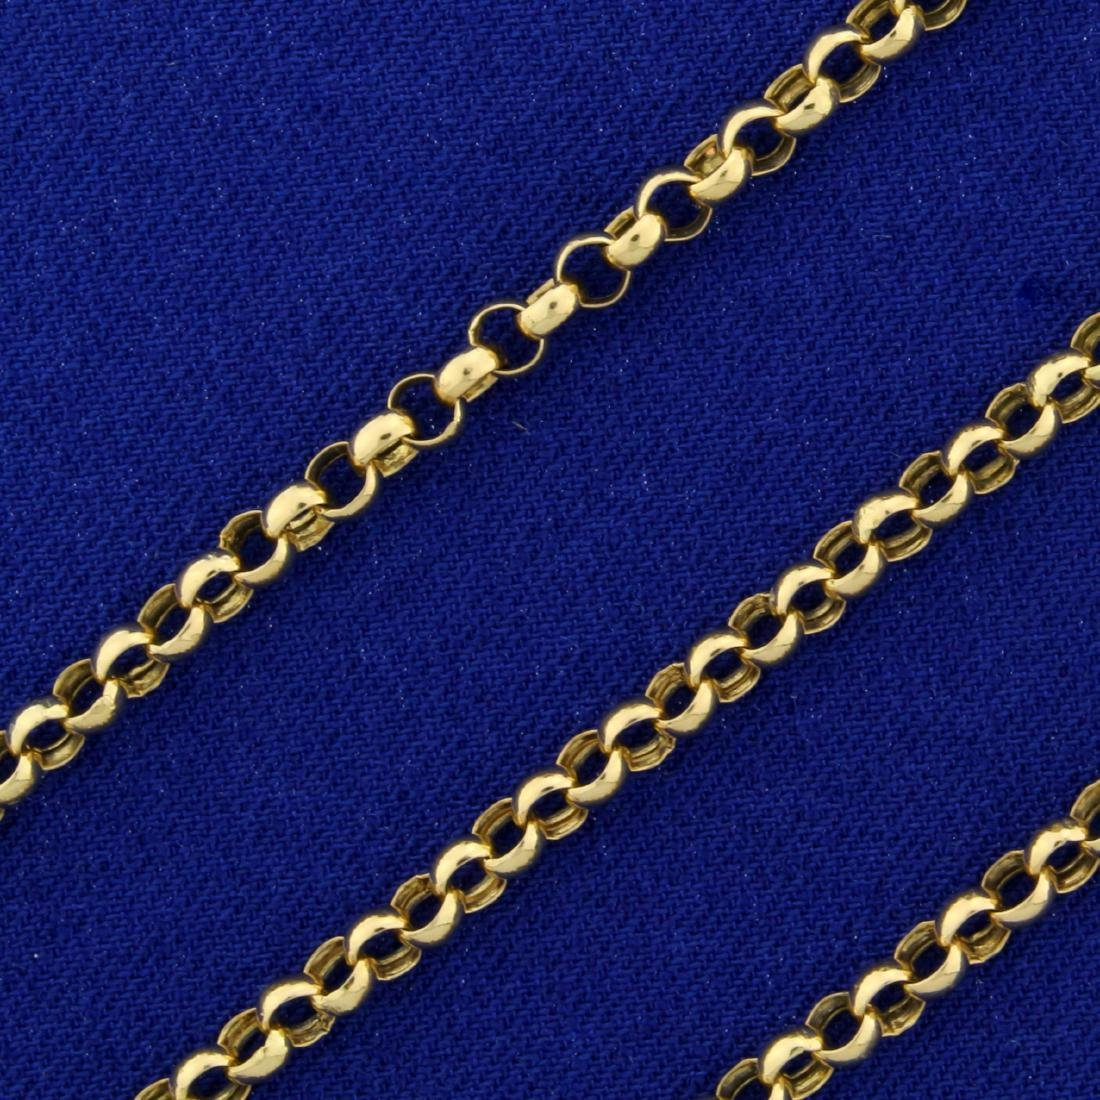 Italian Made 20 Inch Rolo Neck Chain in 14K Yellow Gold - 2